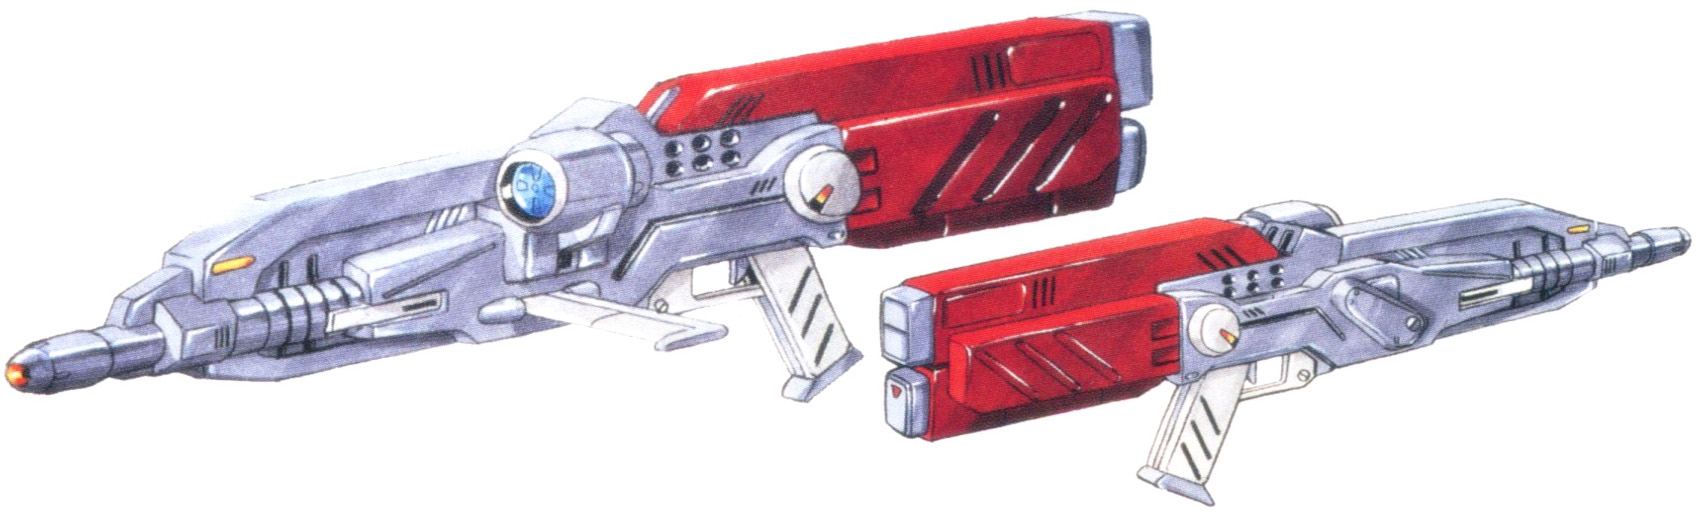 File:Rx-78-7-beamrifle.jpg